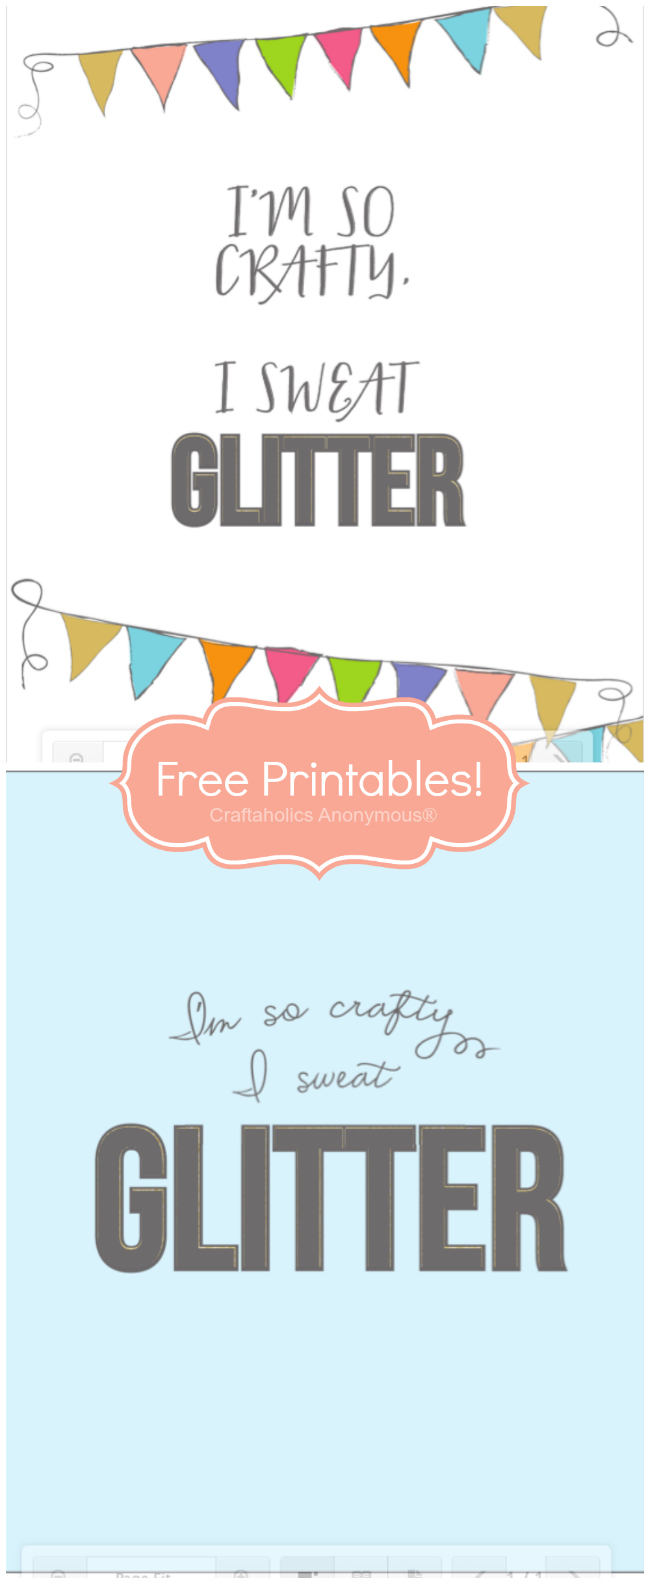 I'm so crafty I sweat glitter printable